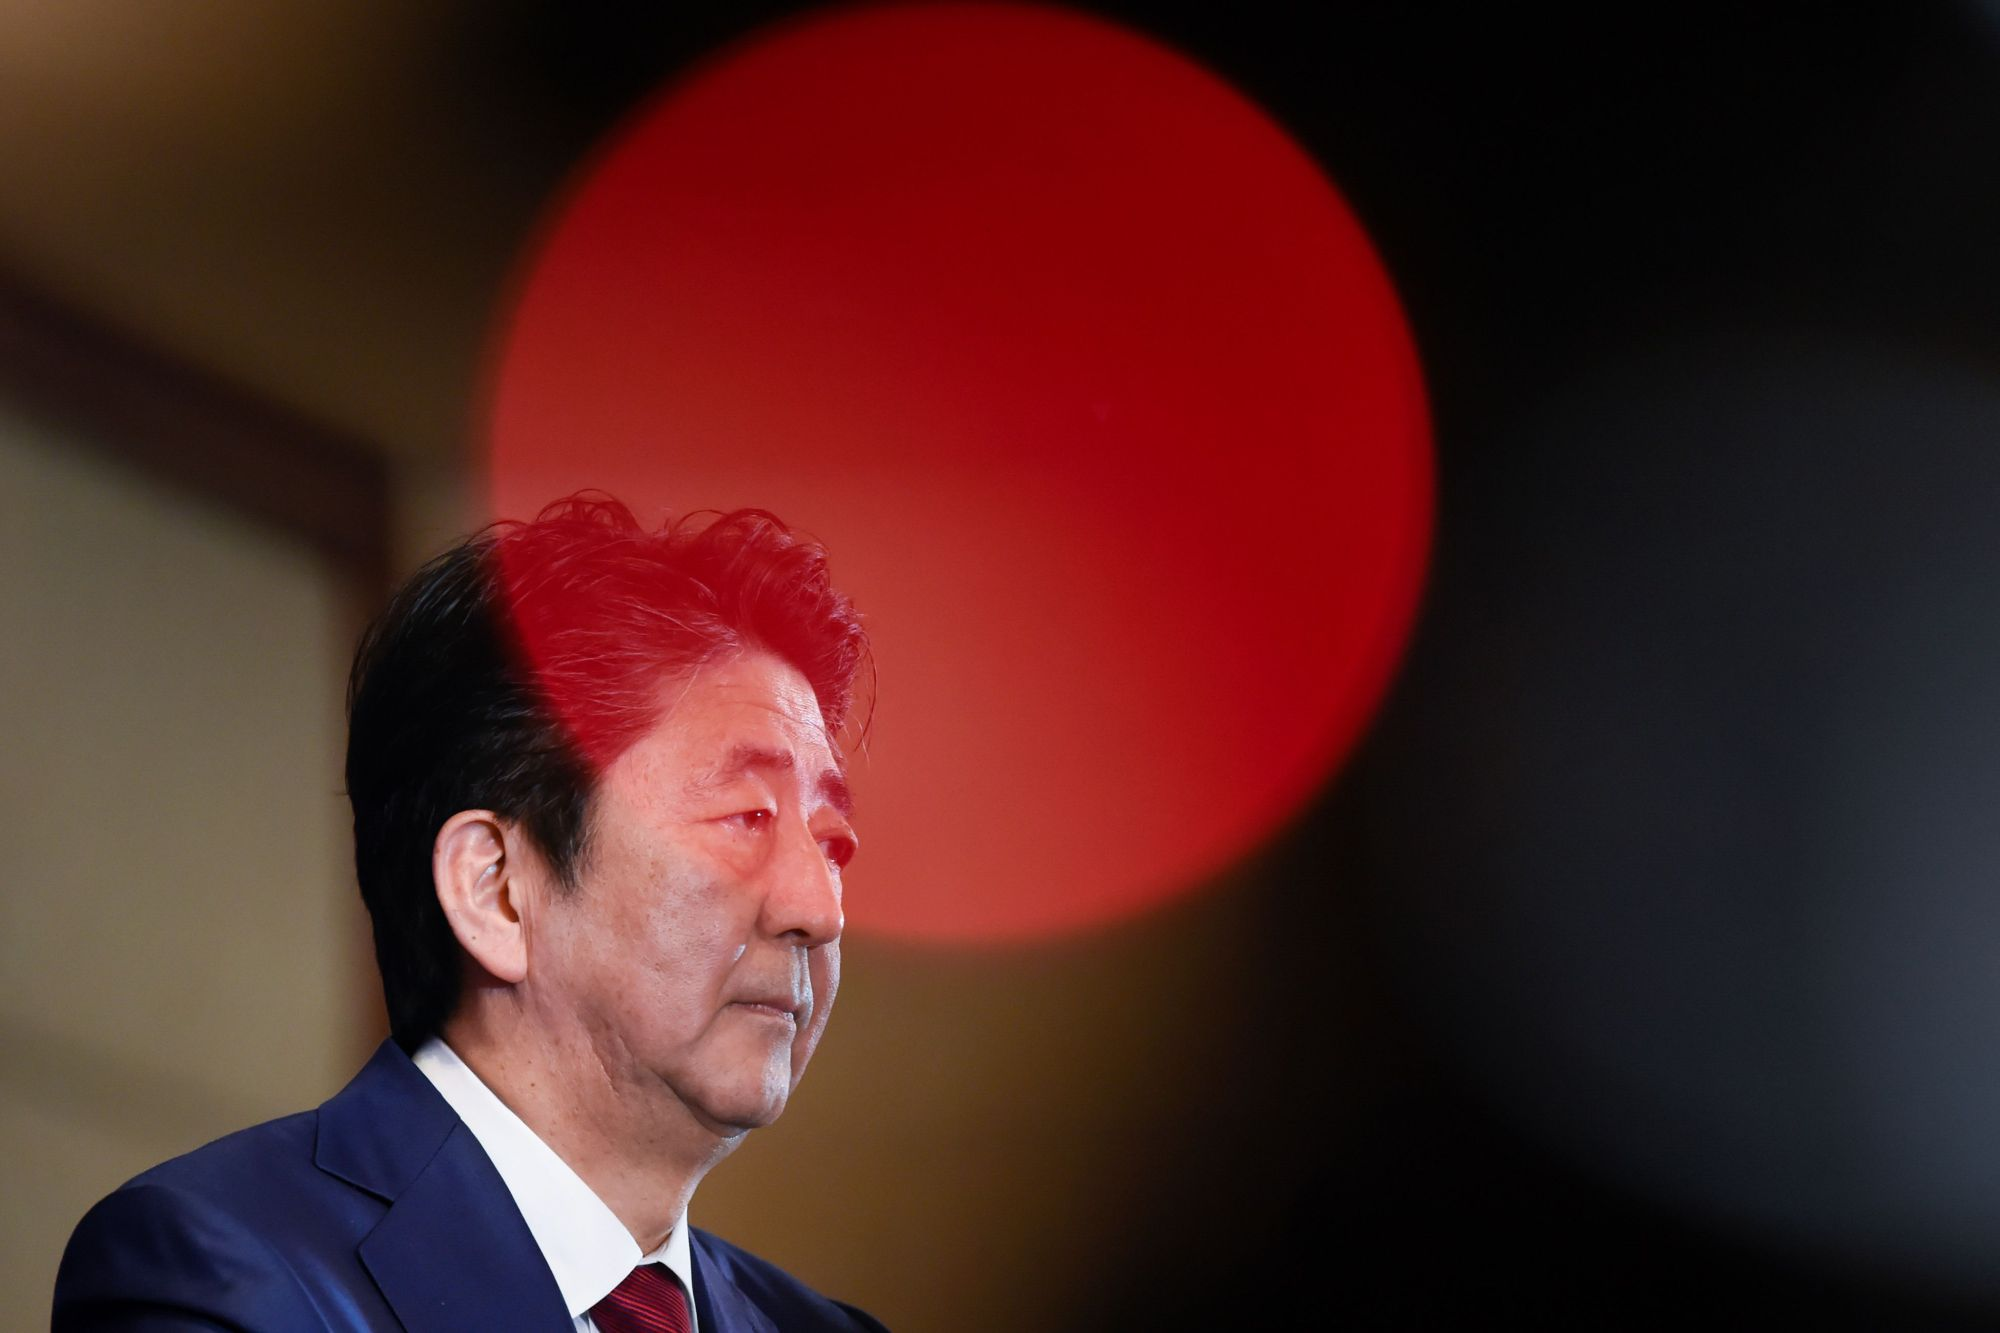 Prime Minister Shinzo Abe's term as LDP leader is scheduled to expire in September 2021, giving him just under two years to cement his legacy and make his mark on Japanese political history. | POOL / VIA AFP-JIJI